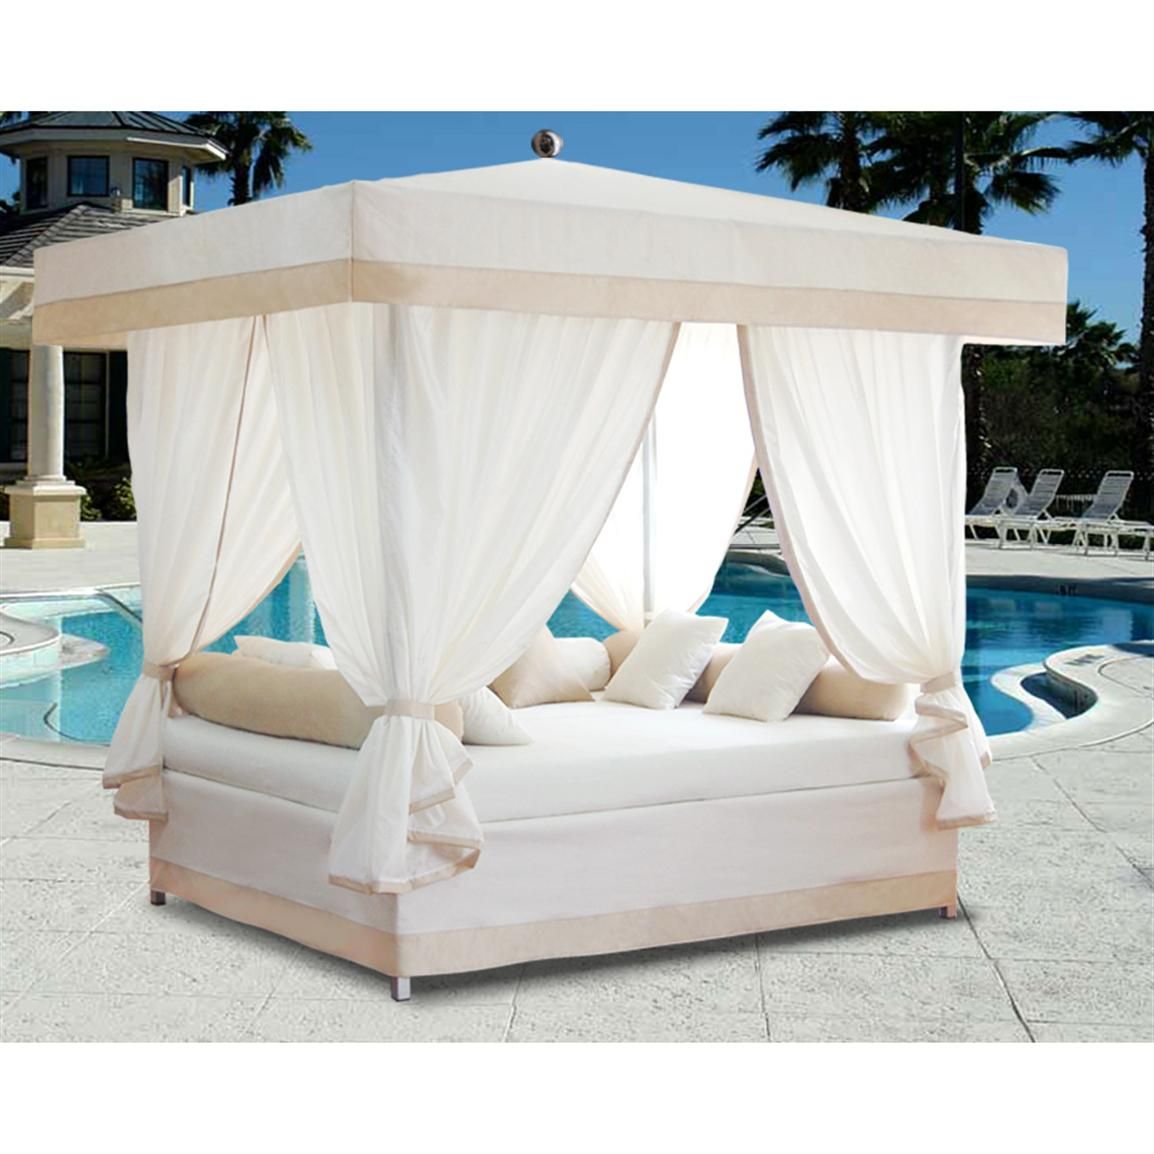 Outdoor canopy lounger